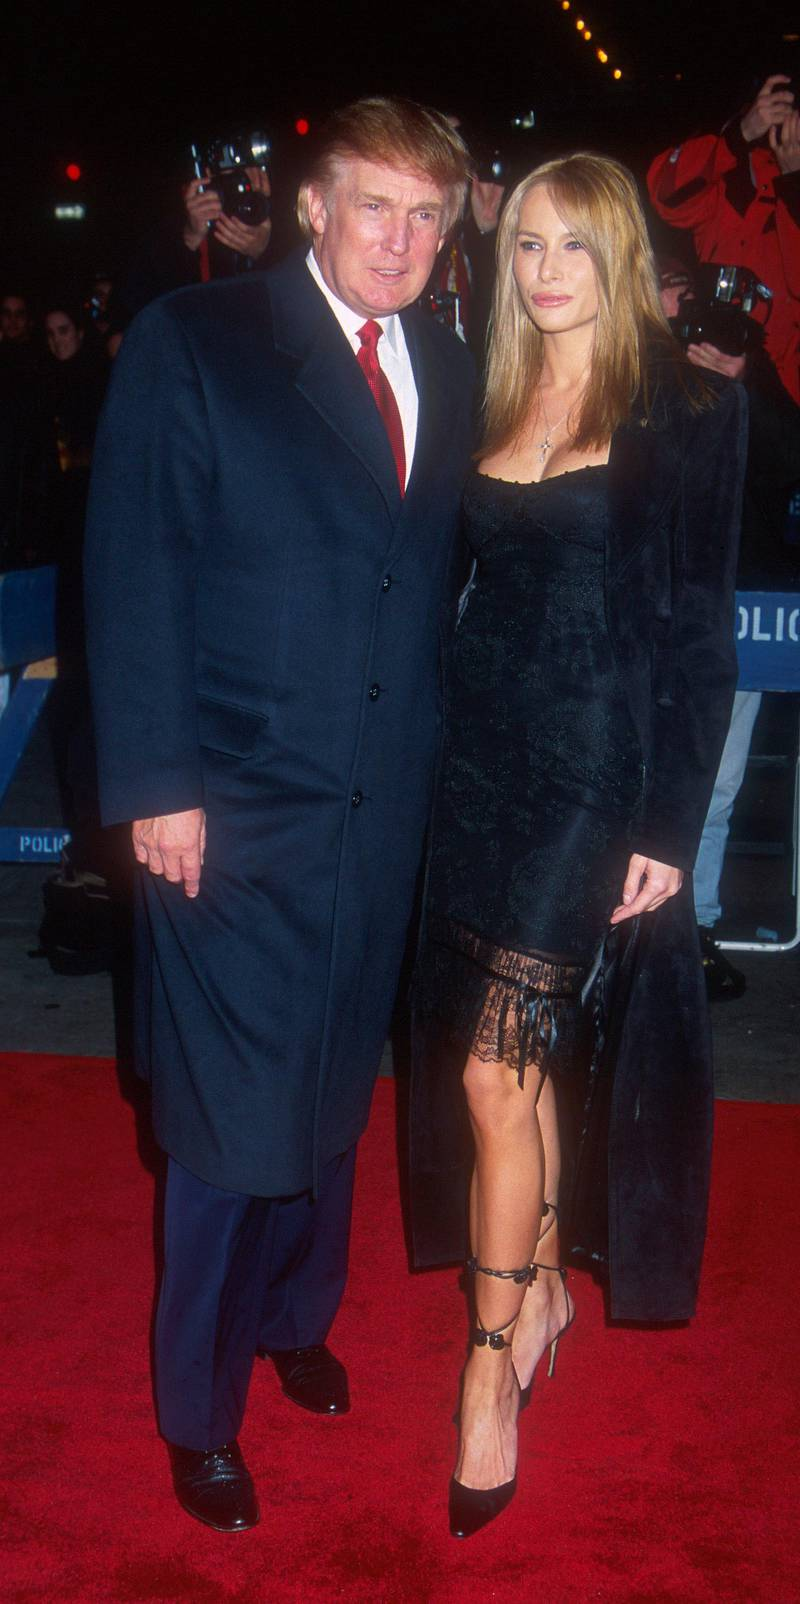 """E367946 06: Donald Trump and Melania Knauss arrive for the world premiere of """"I Dreamed Of Africa"""" April 18, 2000 at Sony Theatres Lincoln Square in New York City. (Photo by Laura Walters/Liaison Agency)"""